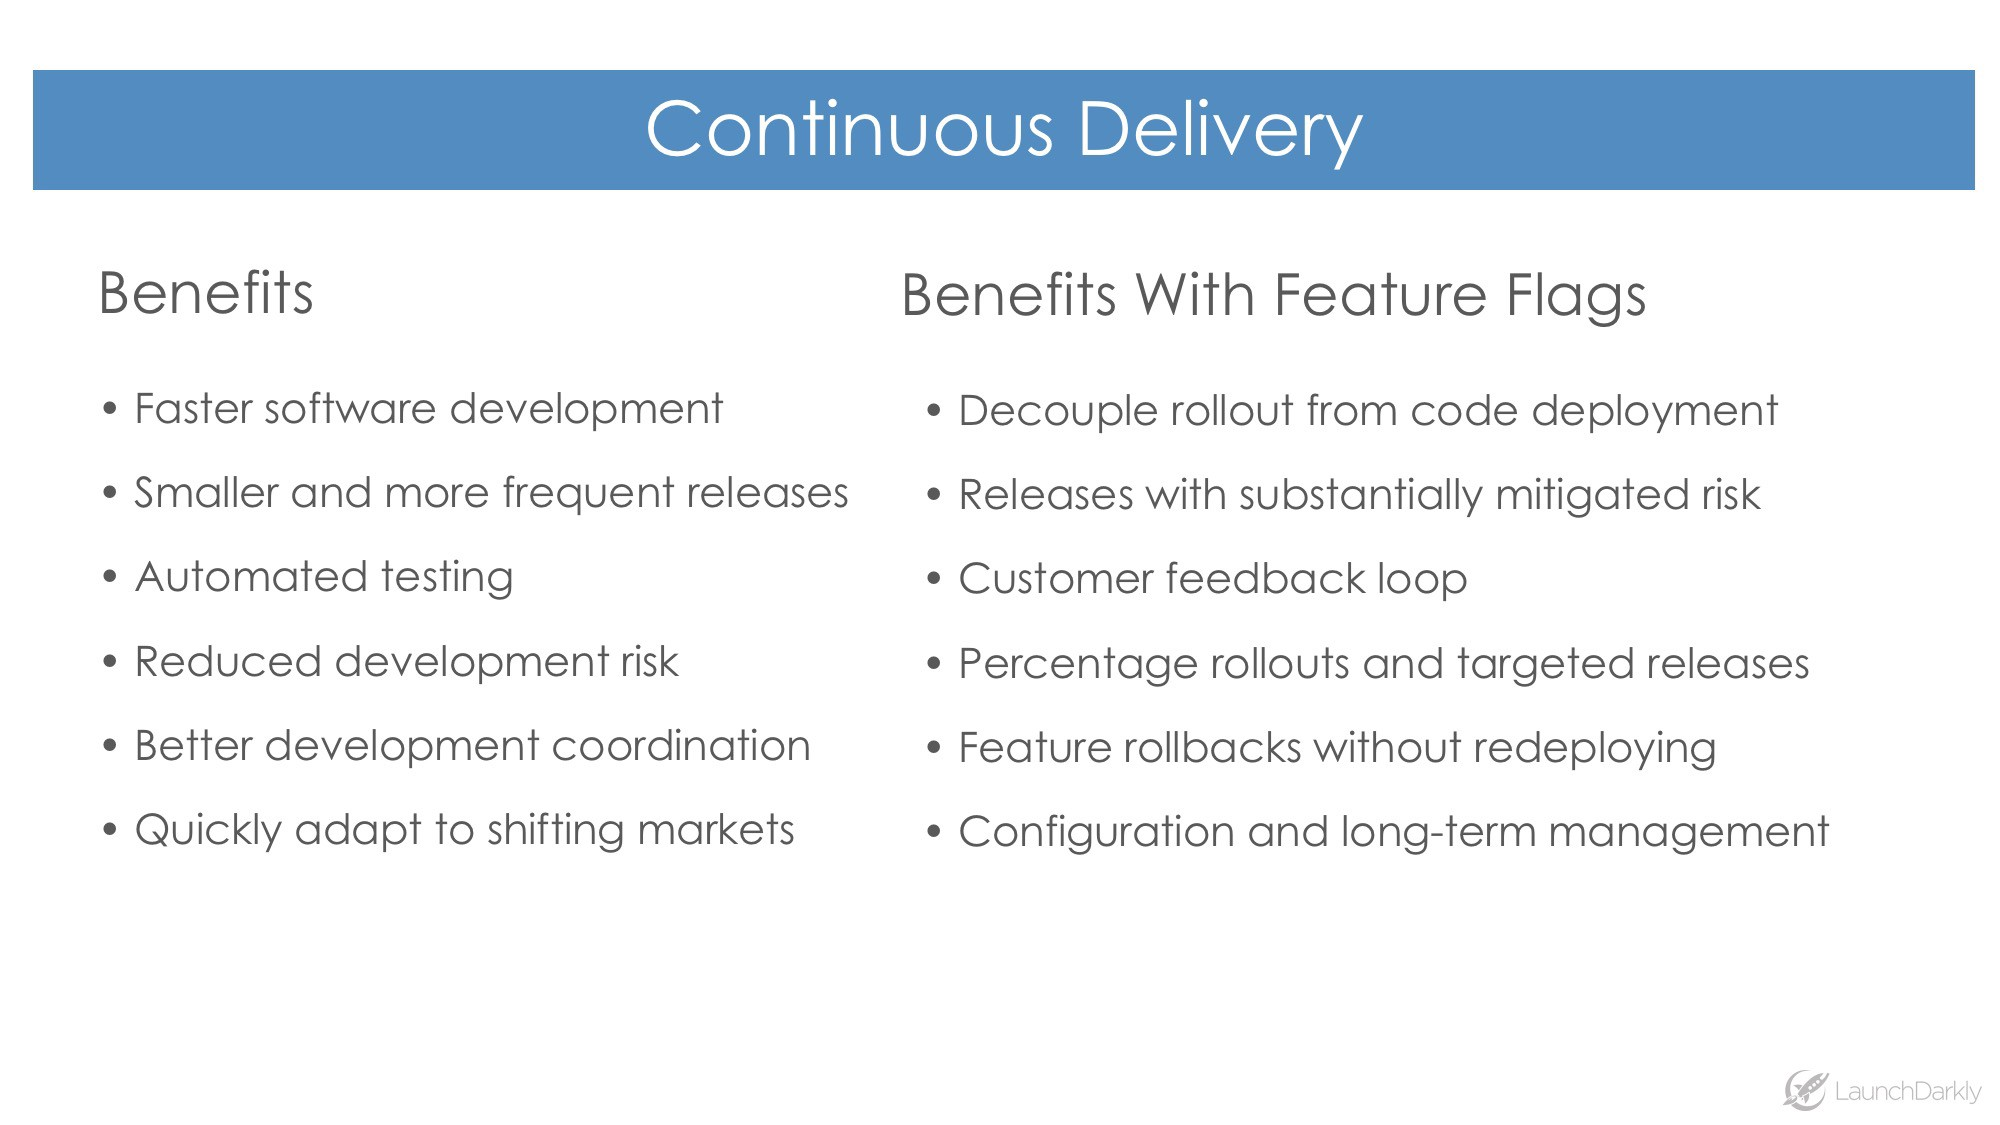 Powering Continuous Delivery With Feature Flags - Justin